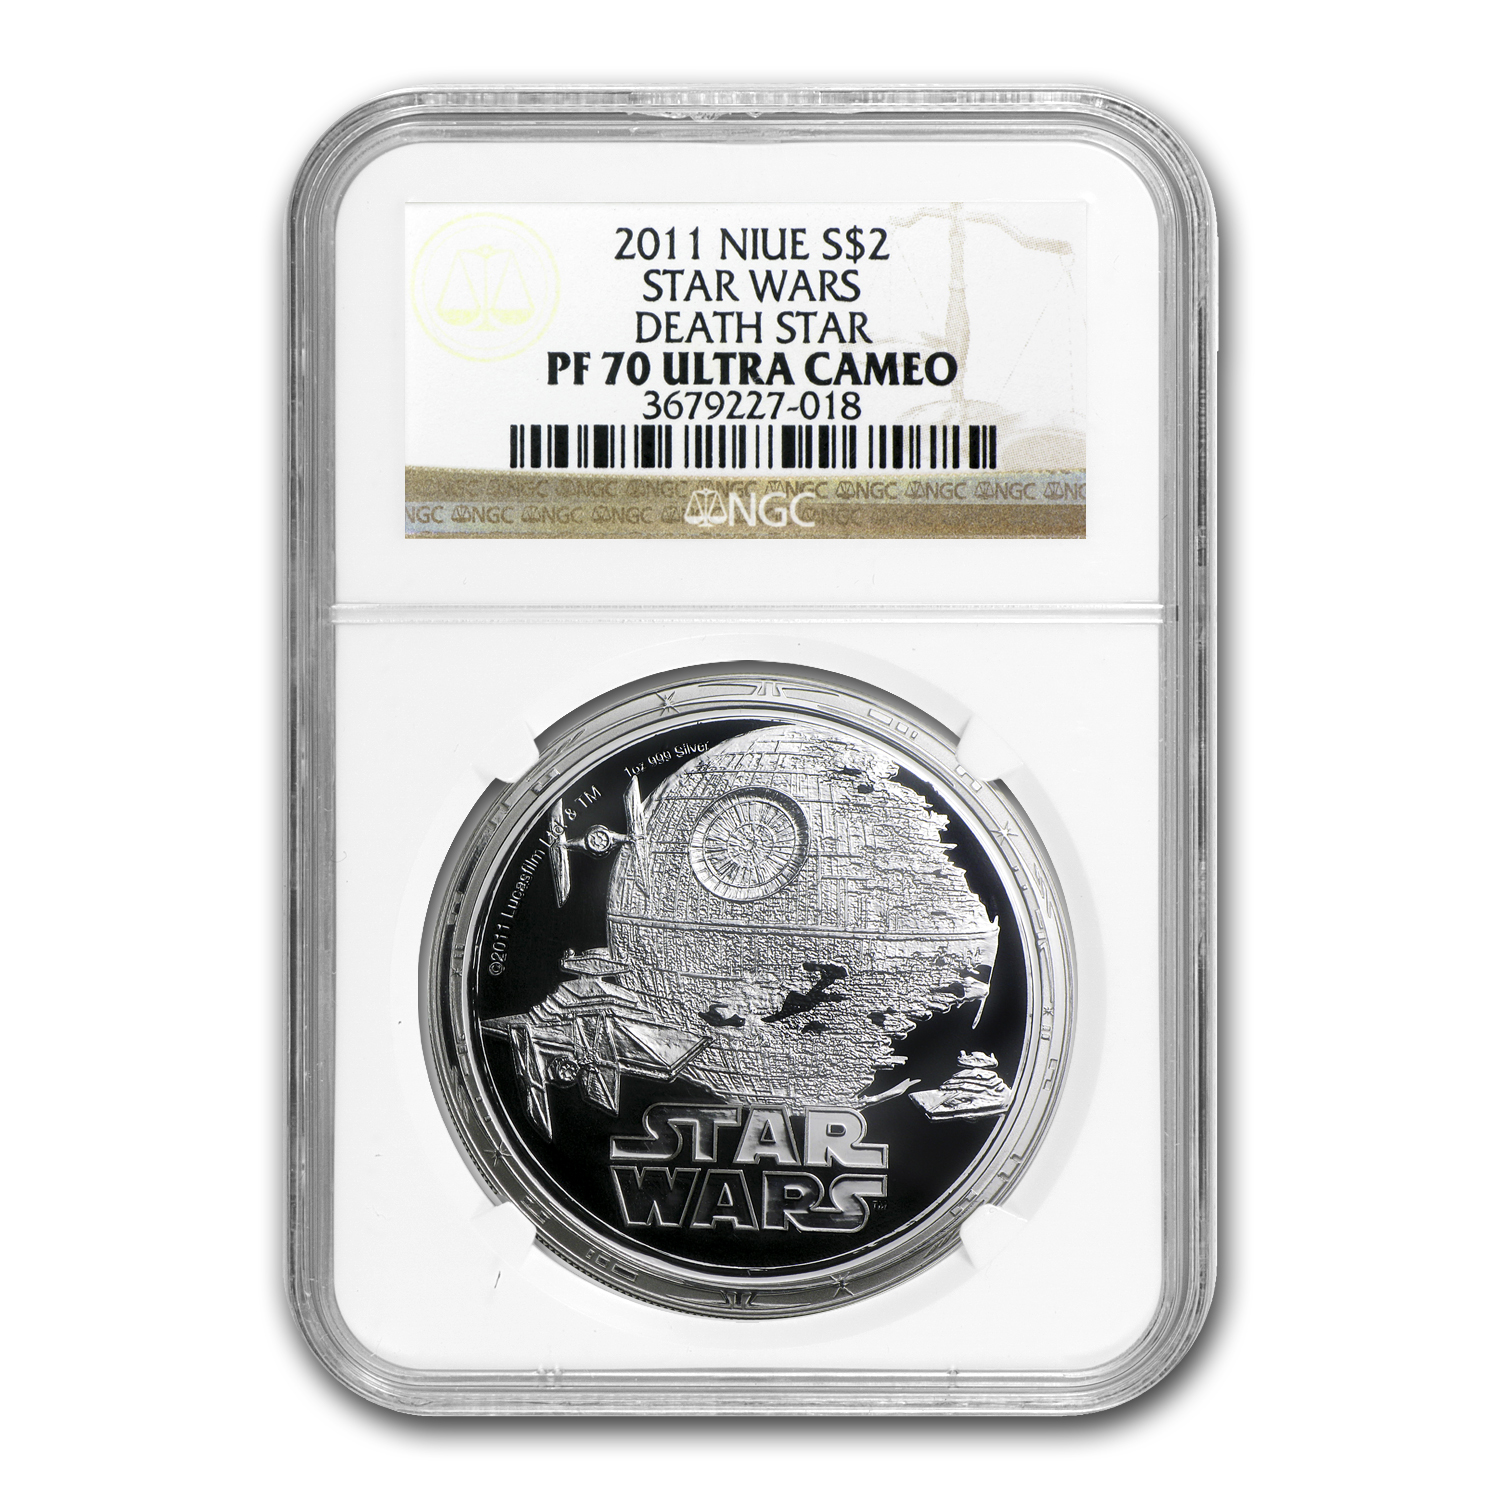 2011 1 oz Silver $2 Niue Star Wars Death Star PF-70 NGC